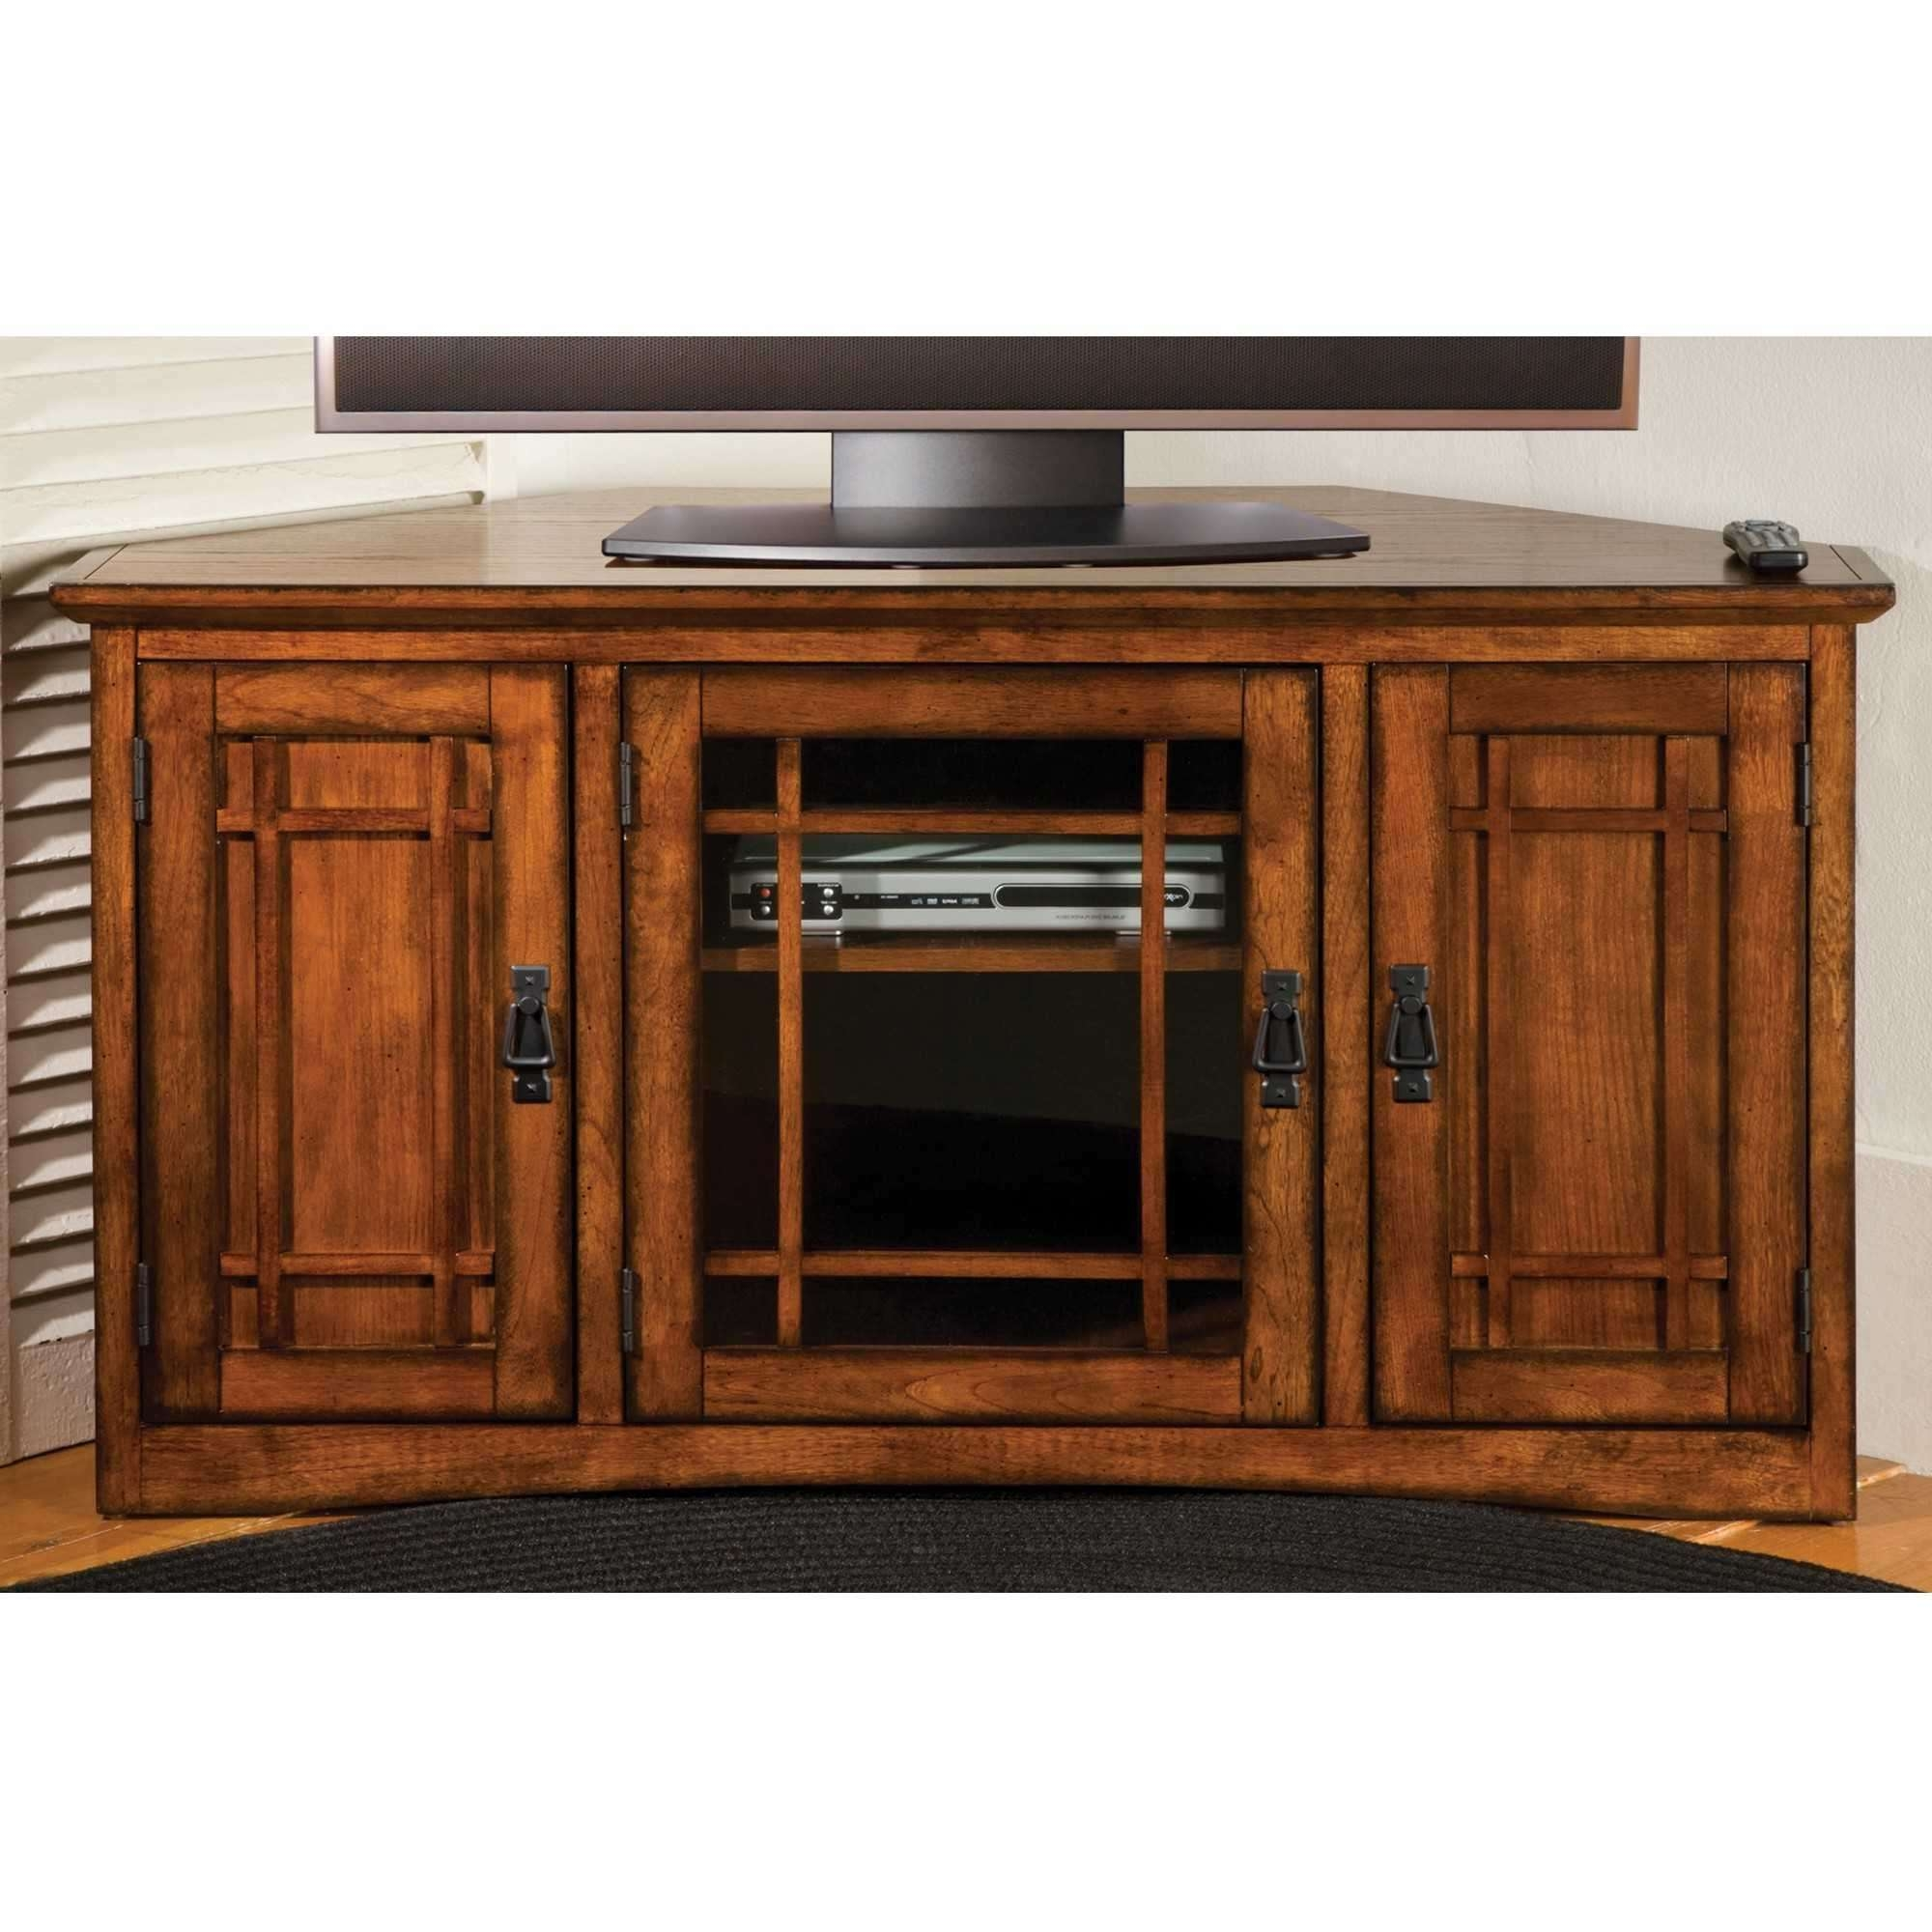 Large Corner Tv Stand And Solid Wood Stands Oak Collection Intended For Solid Wood Corner Tv Cabinets (View 10 of 20)